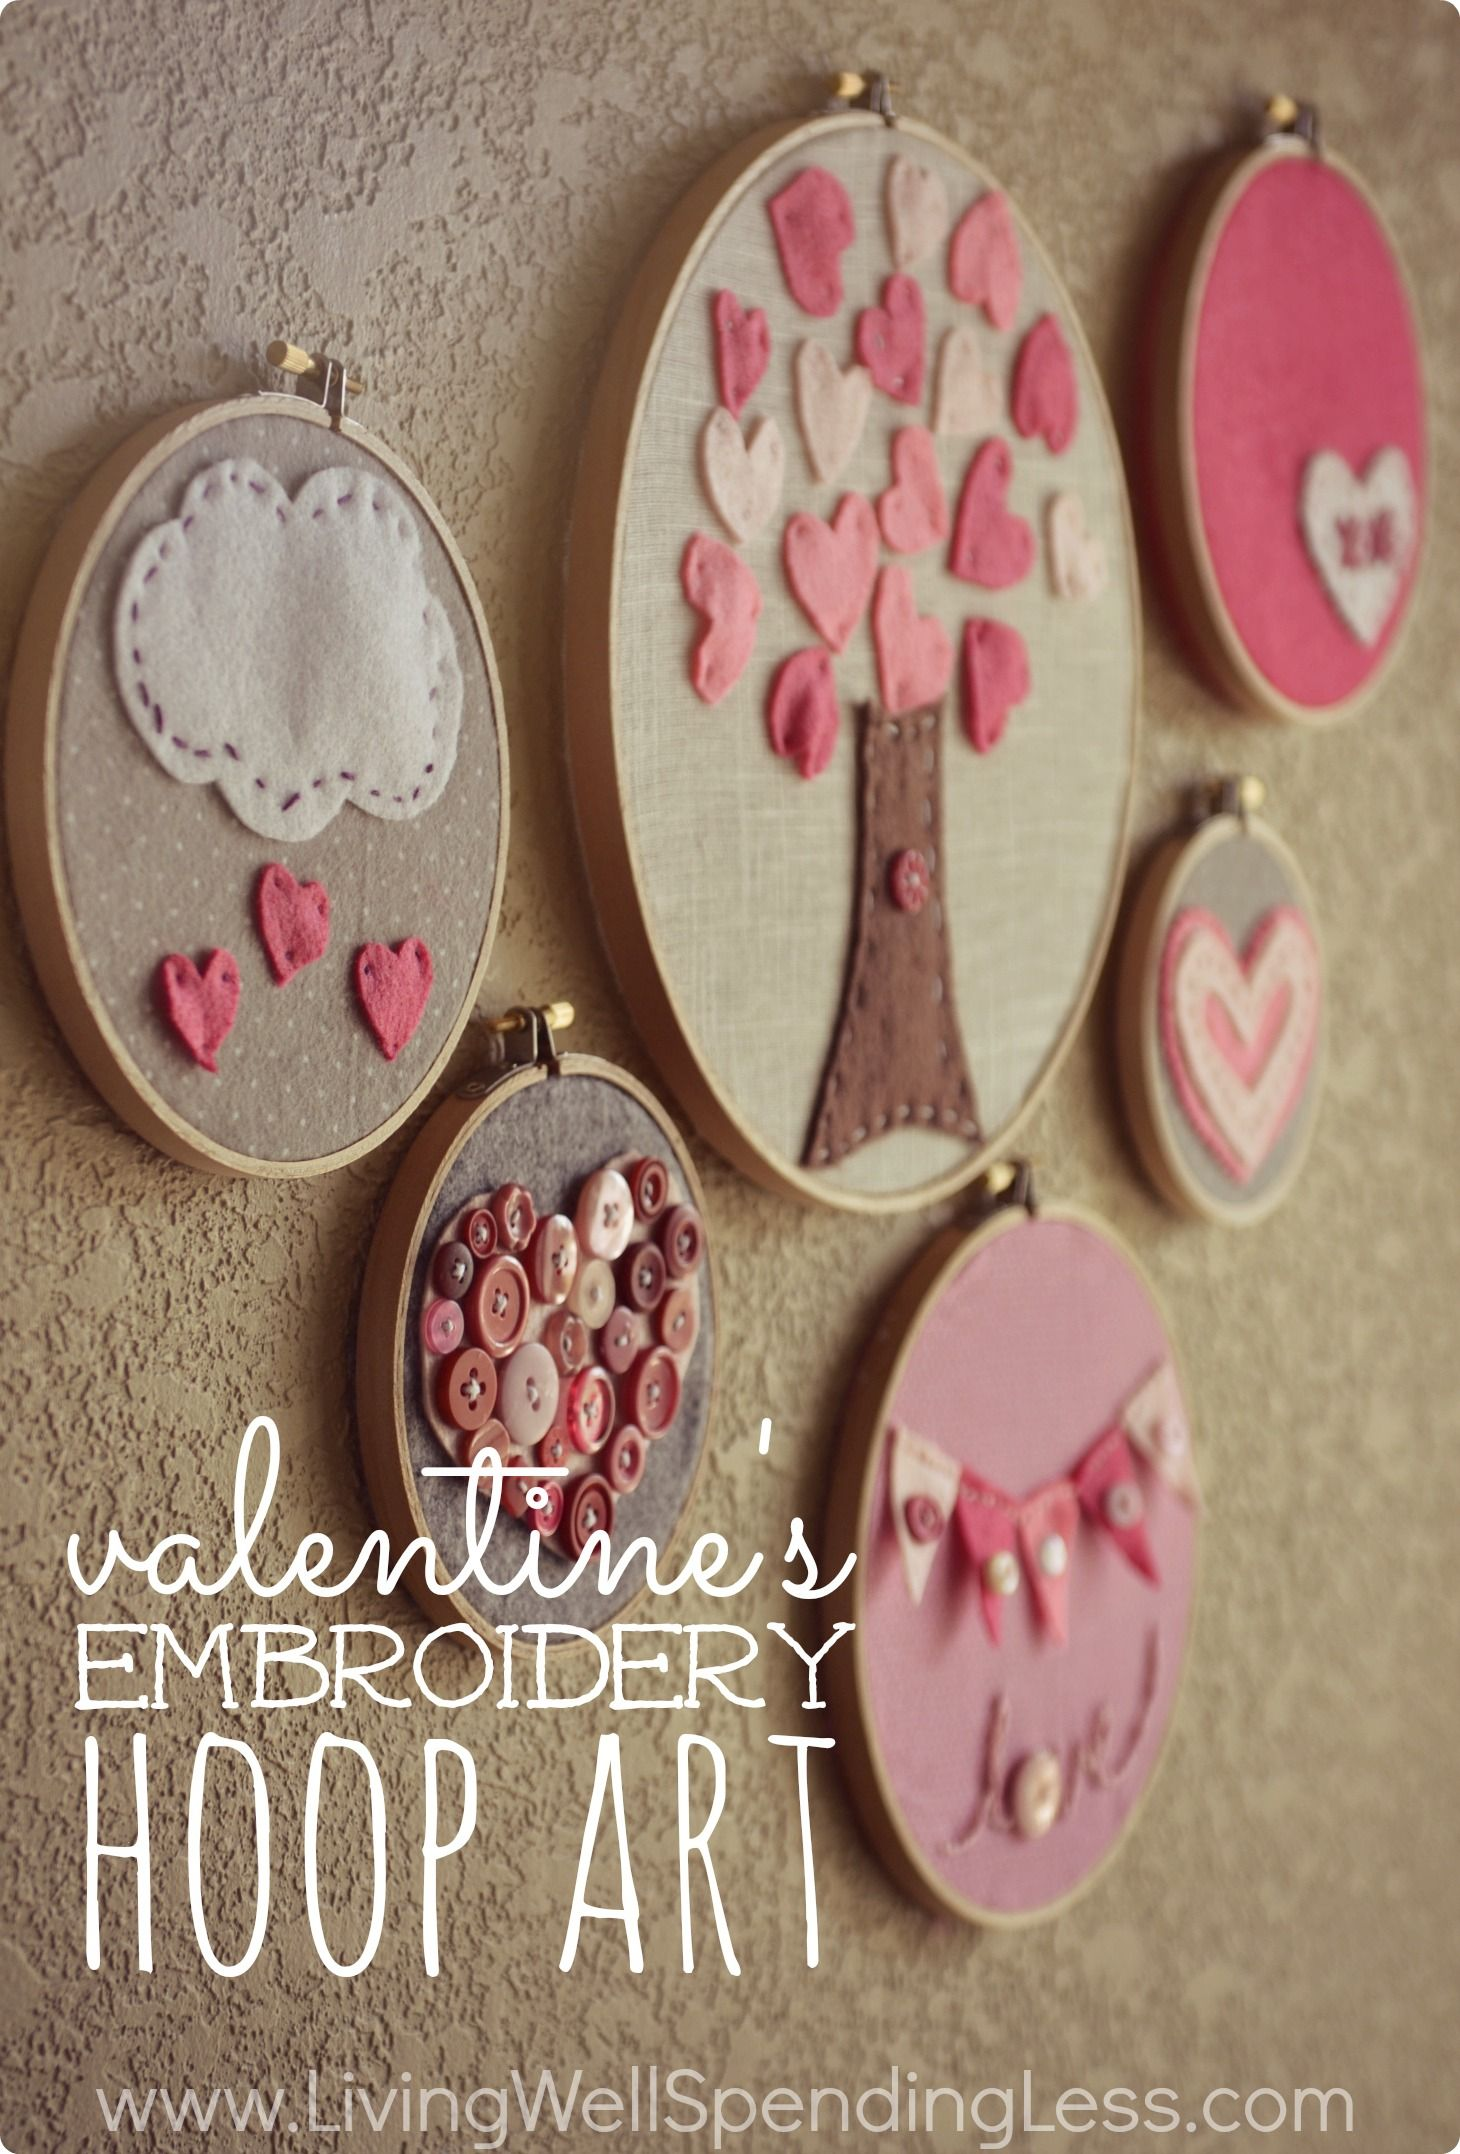 Valentines Day Embroidery Hoop Art These darling